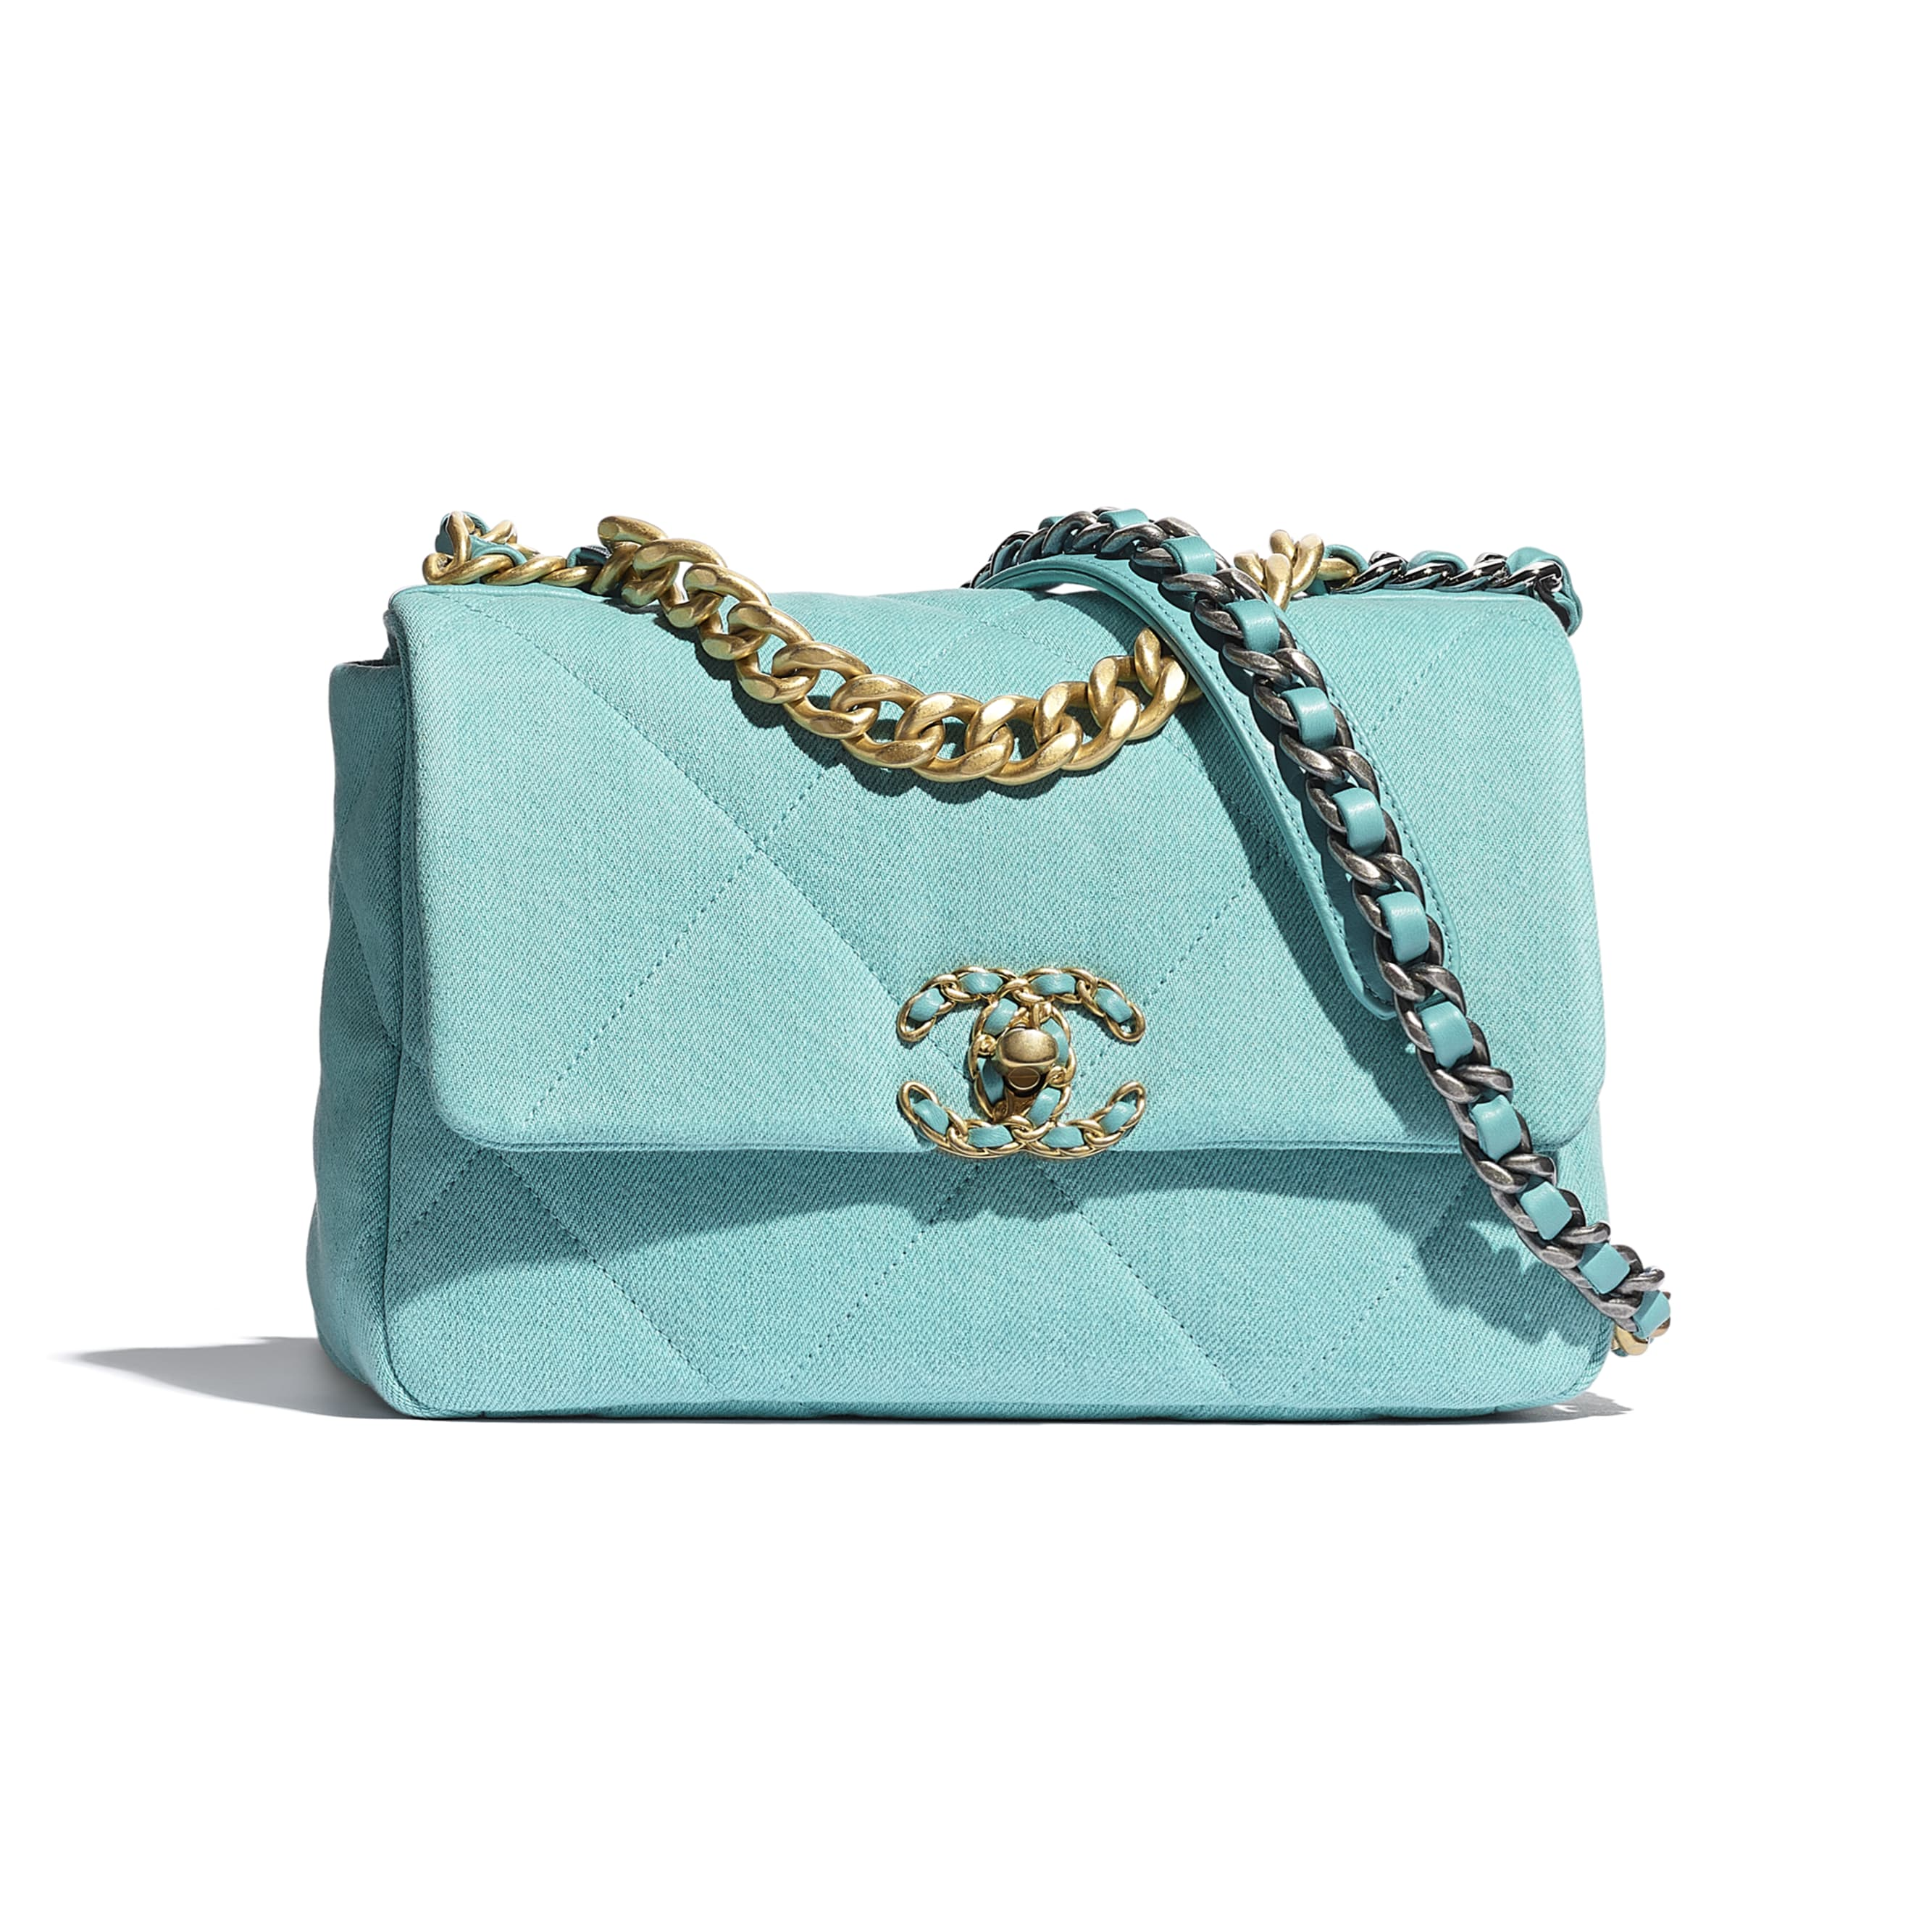 CHANEL 19 Handbag - Neon Blue - Denim, Calfskin, Gold-Tone, Silver-Tone & Ruthenium-Finish Metal - CHANEL - Default view - see standard sized version